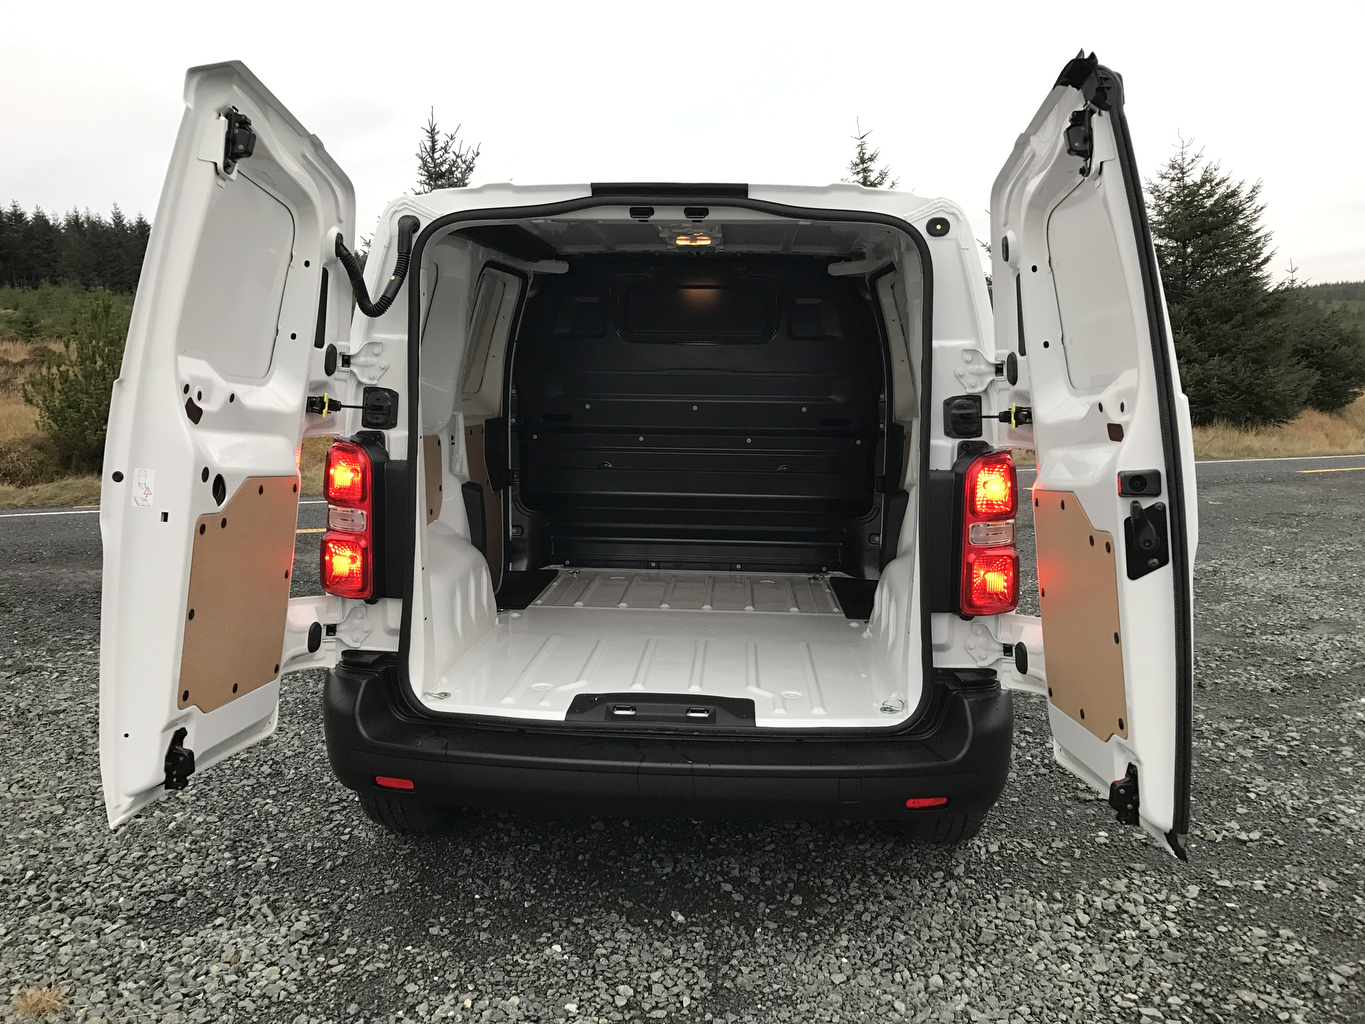 A view of the cargo area for the new Toyota Proace which we drove this week. Photo Brian McDaid